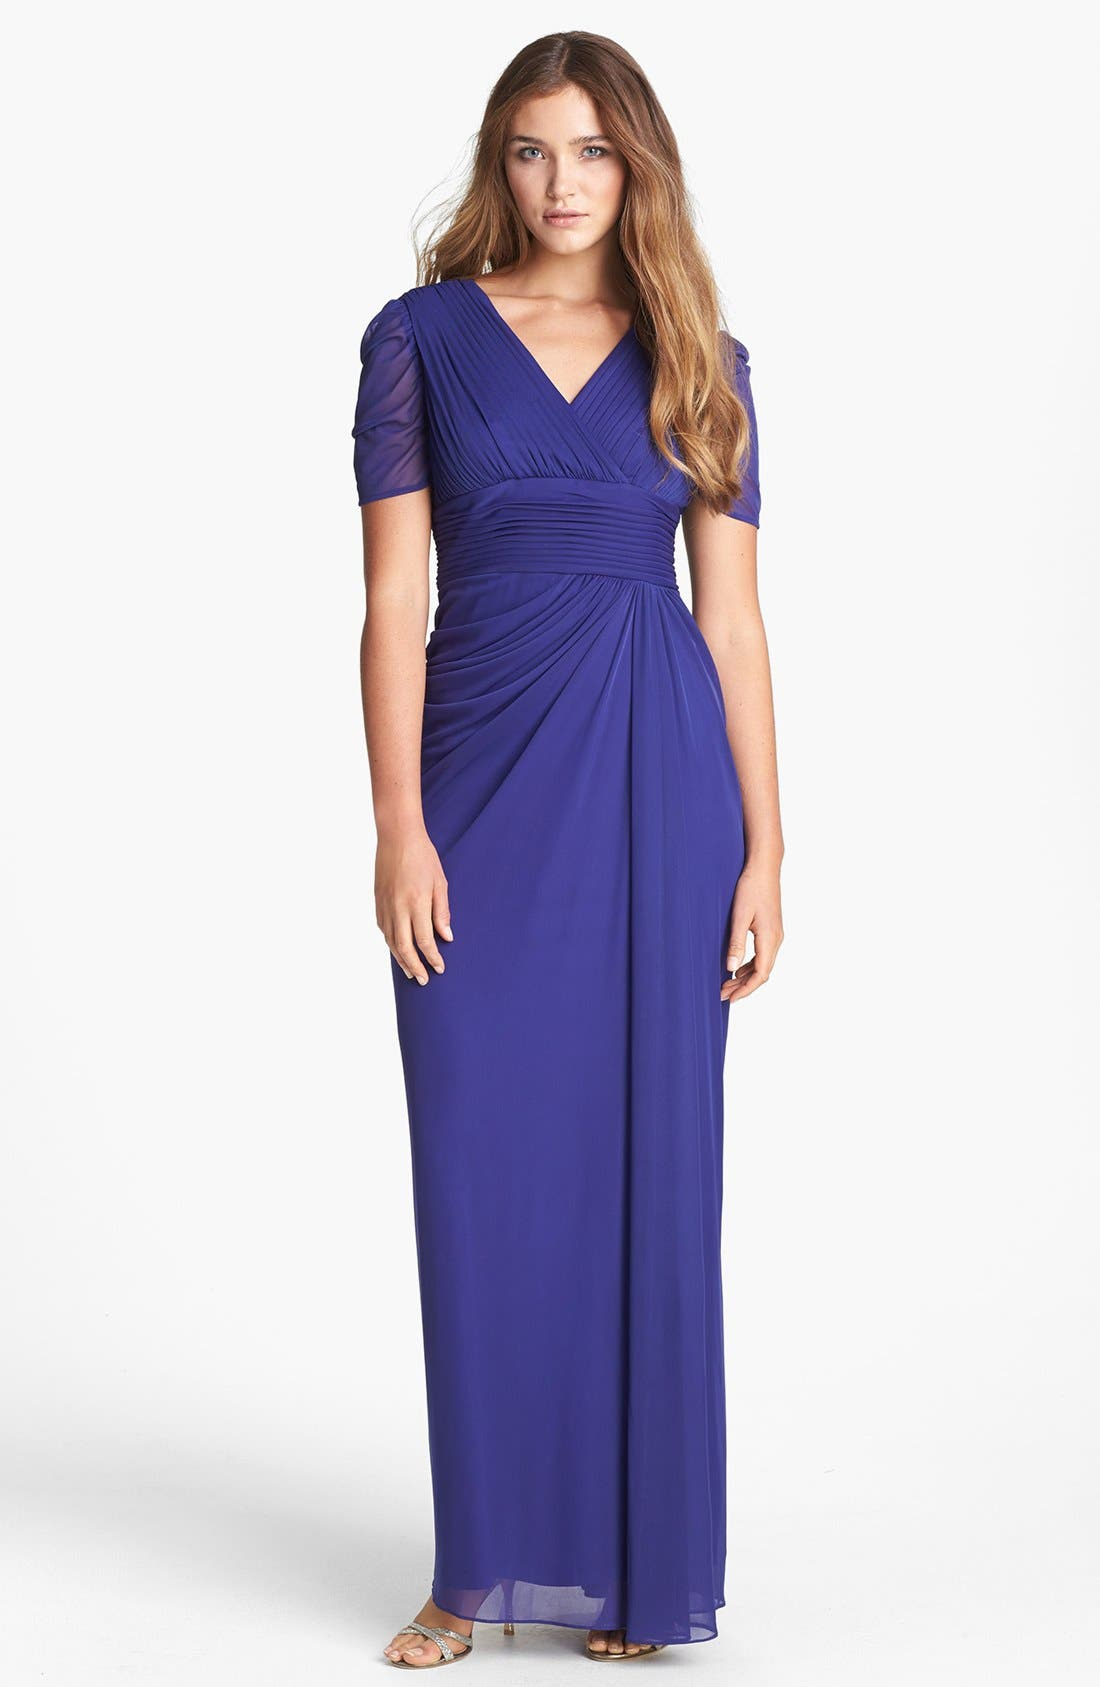 Alternate Image 1 Selected - Adrianna Papell Draped Chiffon Gown (Petite)